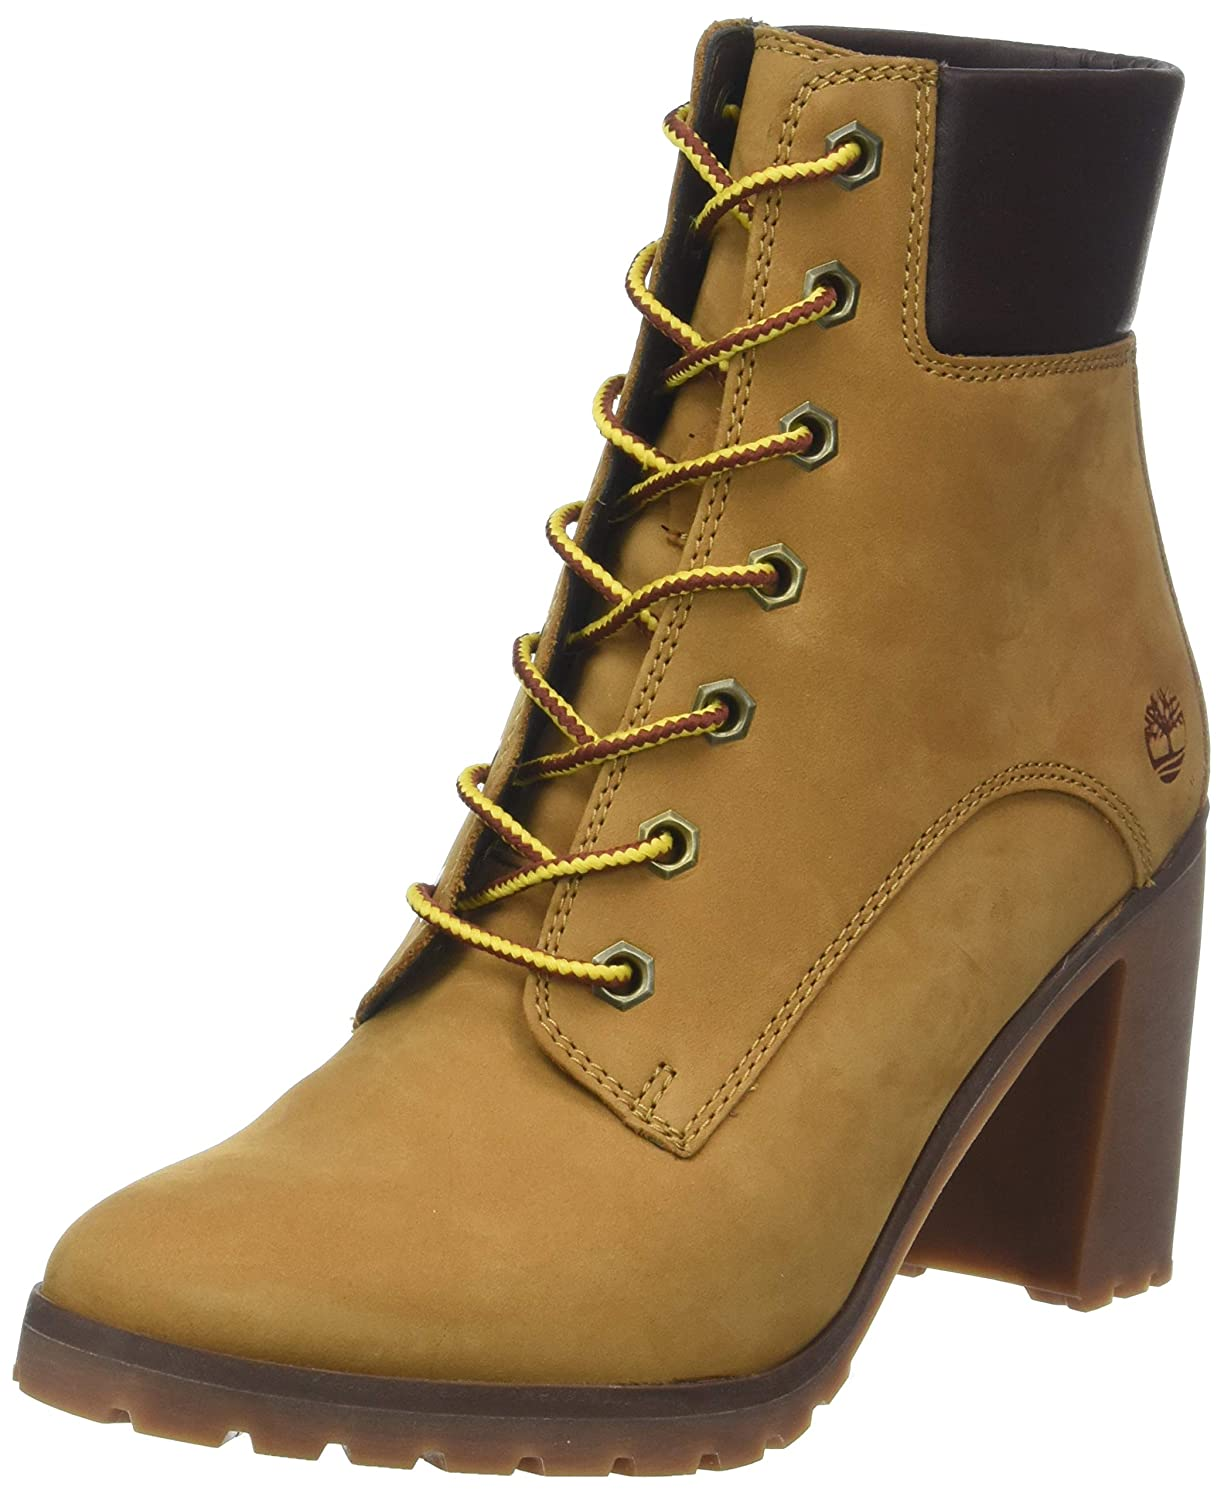 a8e9a420deef Timberland Women s Allington 6-inch Lace Up High Boots  Amazon.co.uk ...